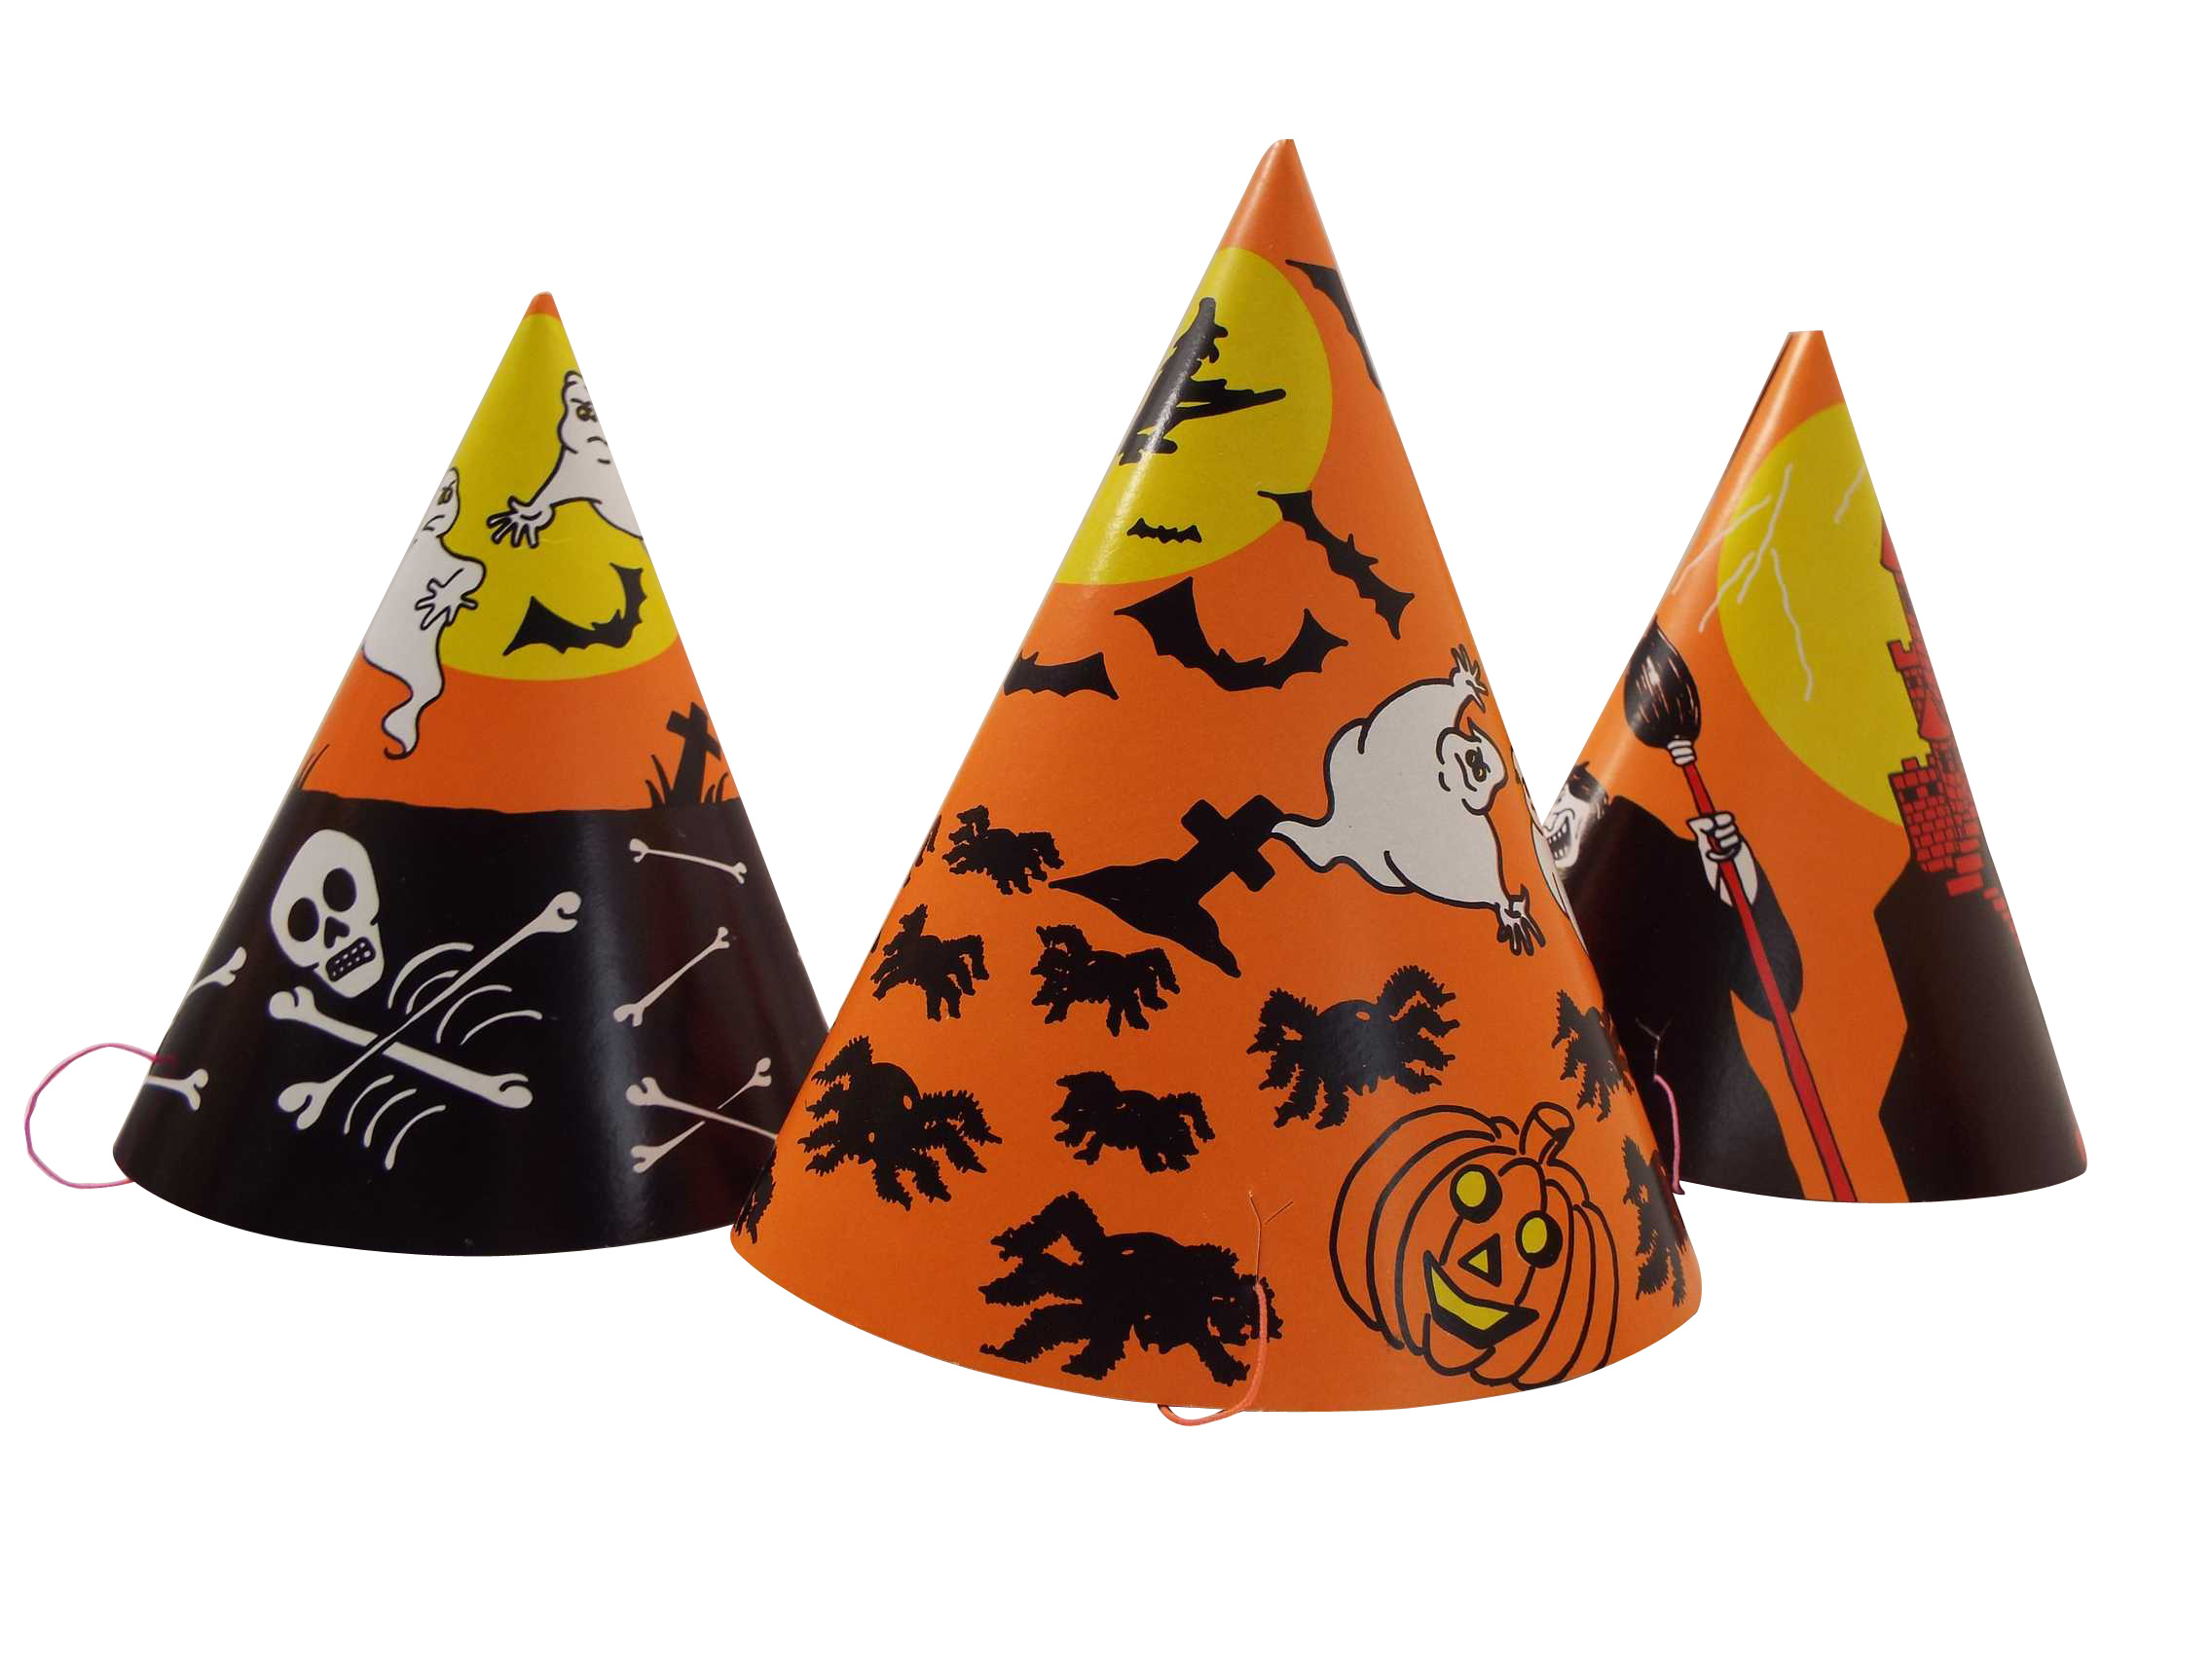 wholesale joblot of 100 sets of halloween party hats and